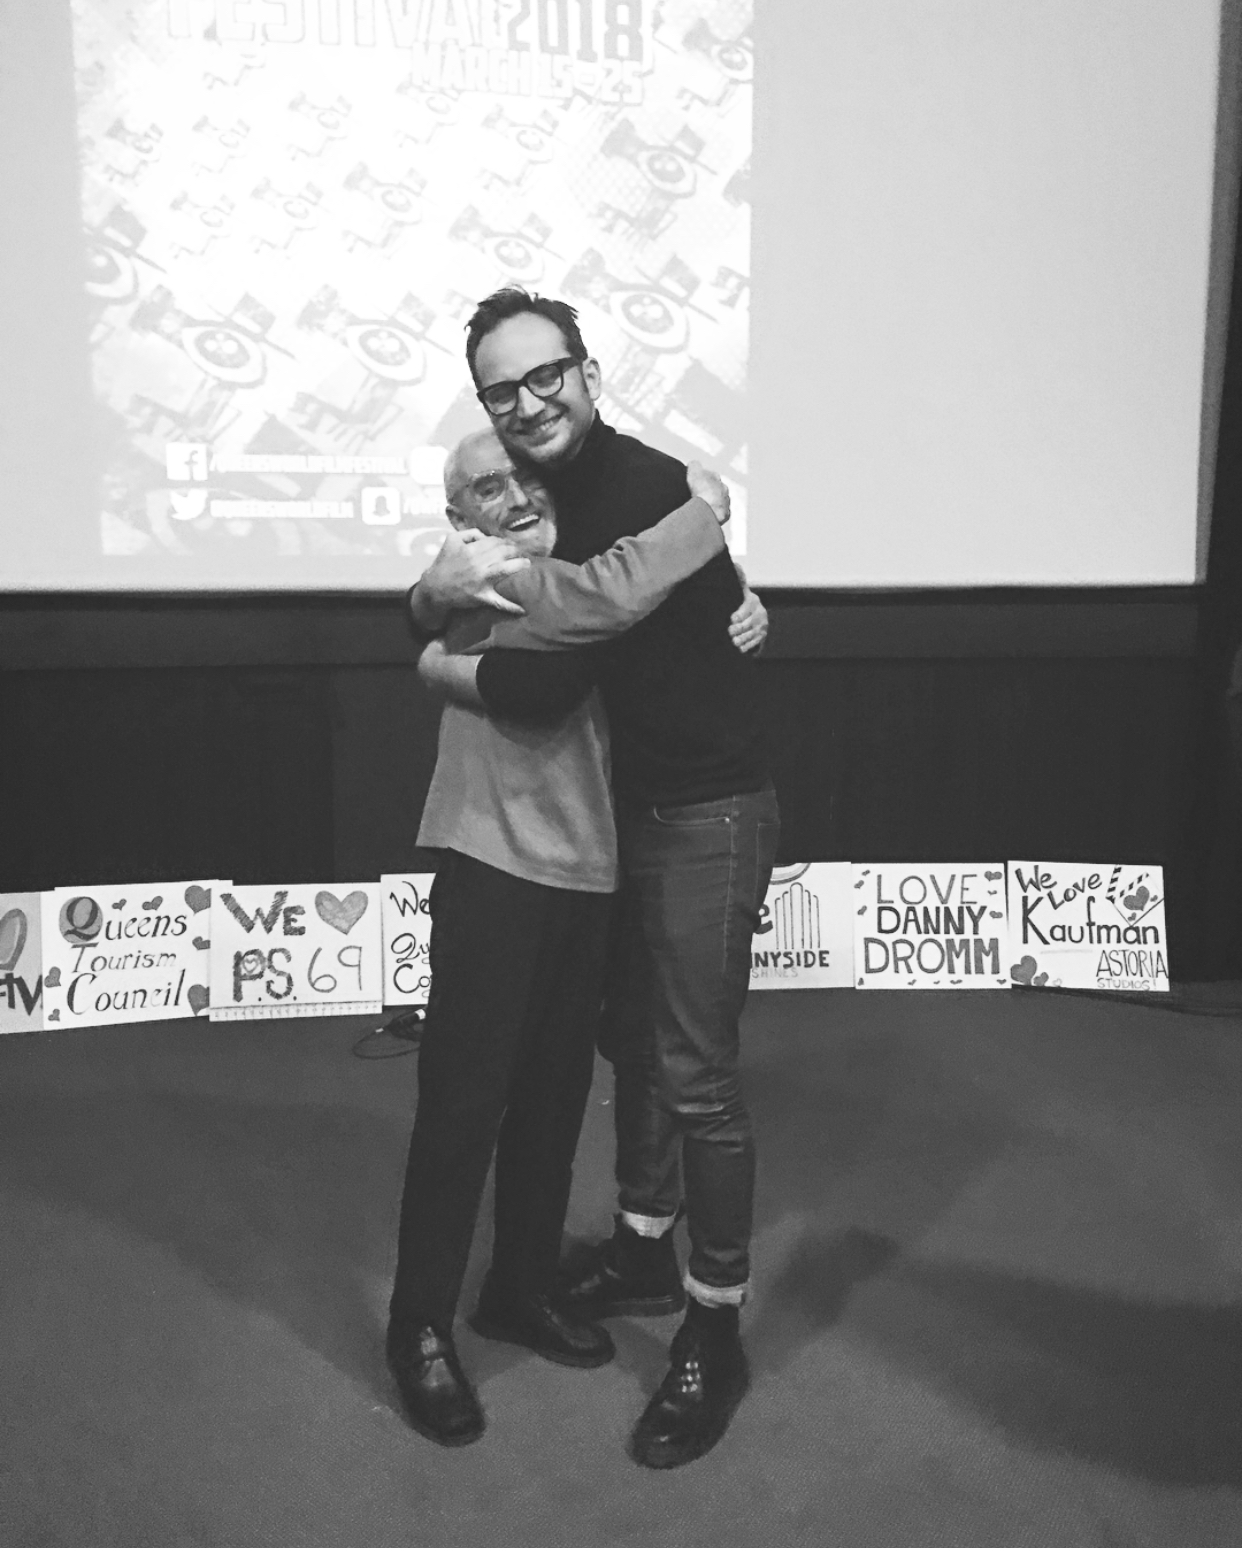 With Artist Zois Shuttie after the premiere